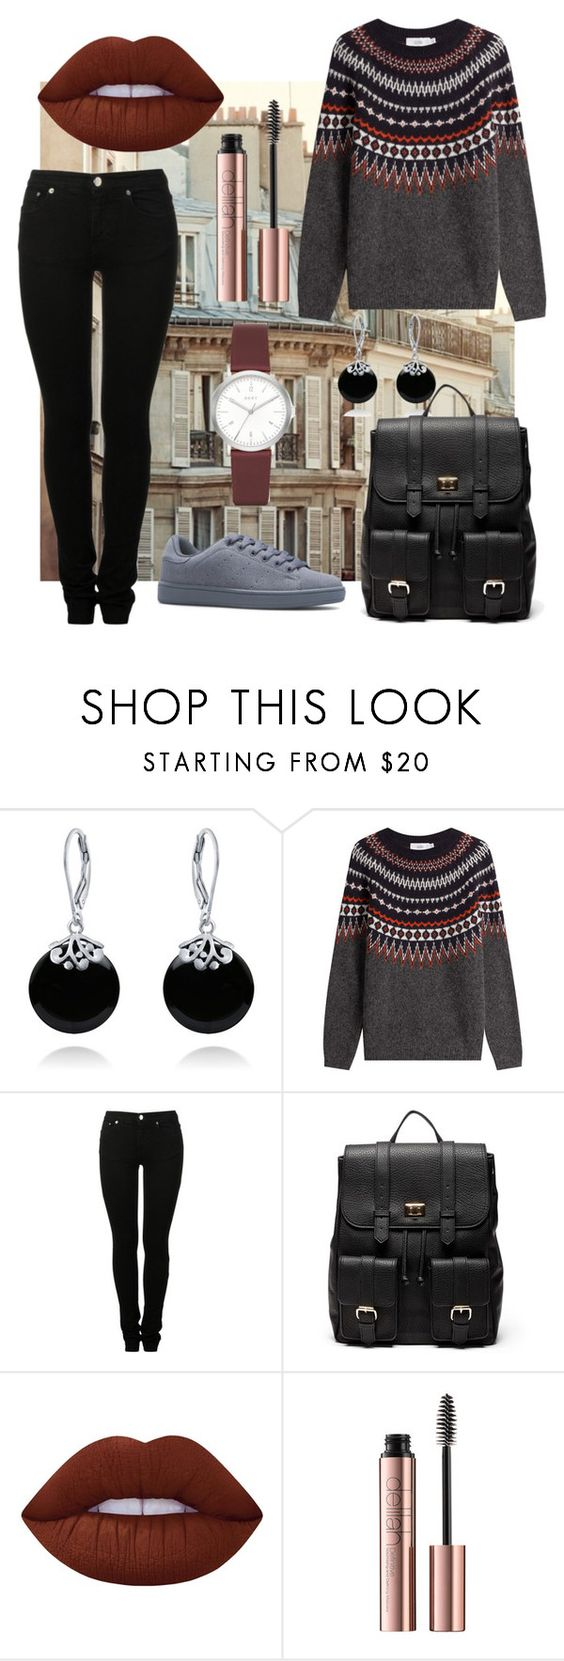 """""""Winter is coming."""" by just-lea on Polyvore featuring Bling Jewelry, Closed, MM6 Maison Margiela, Sole Society, Lime Crime and DKNY"""